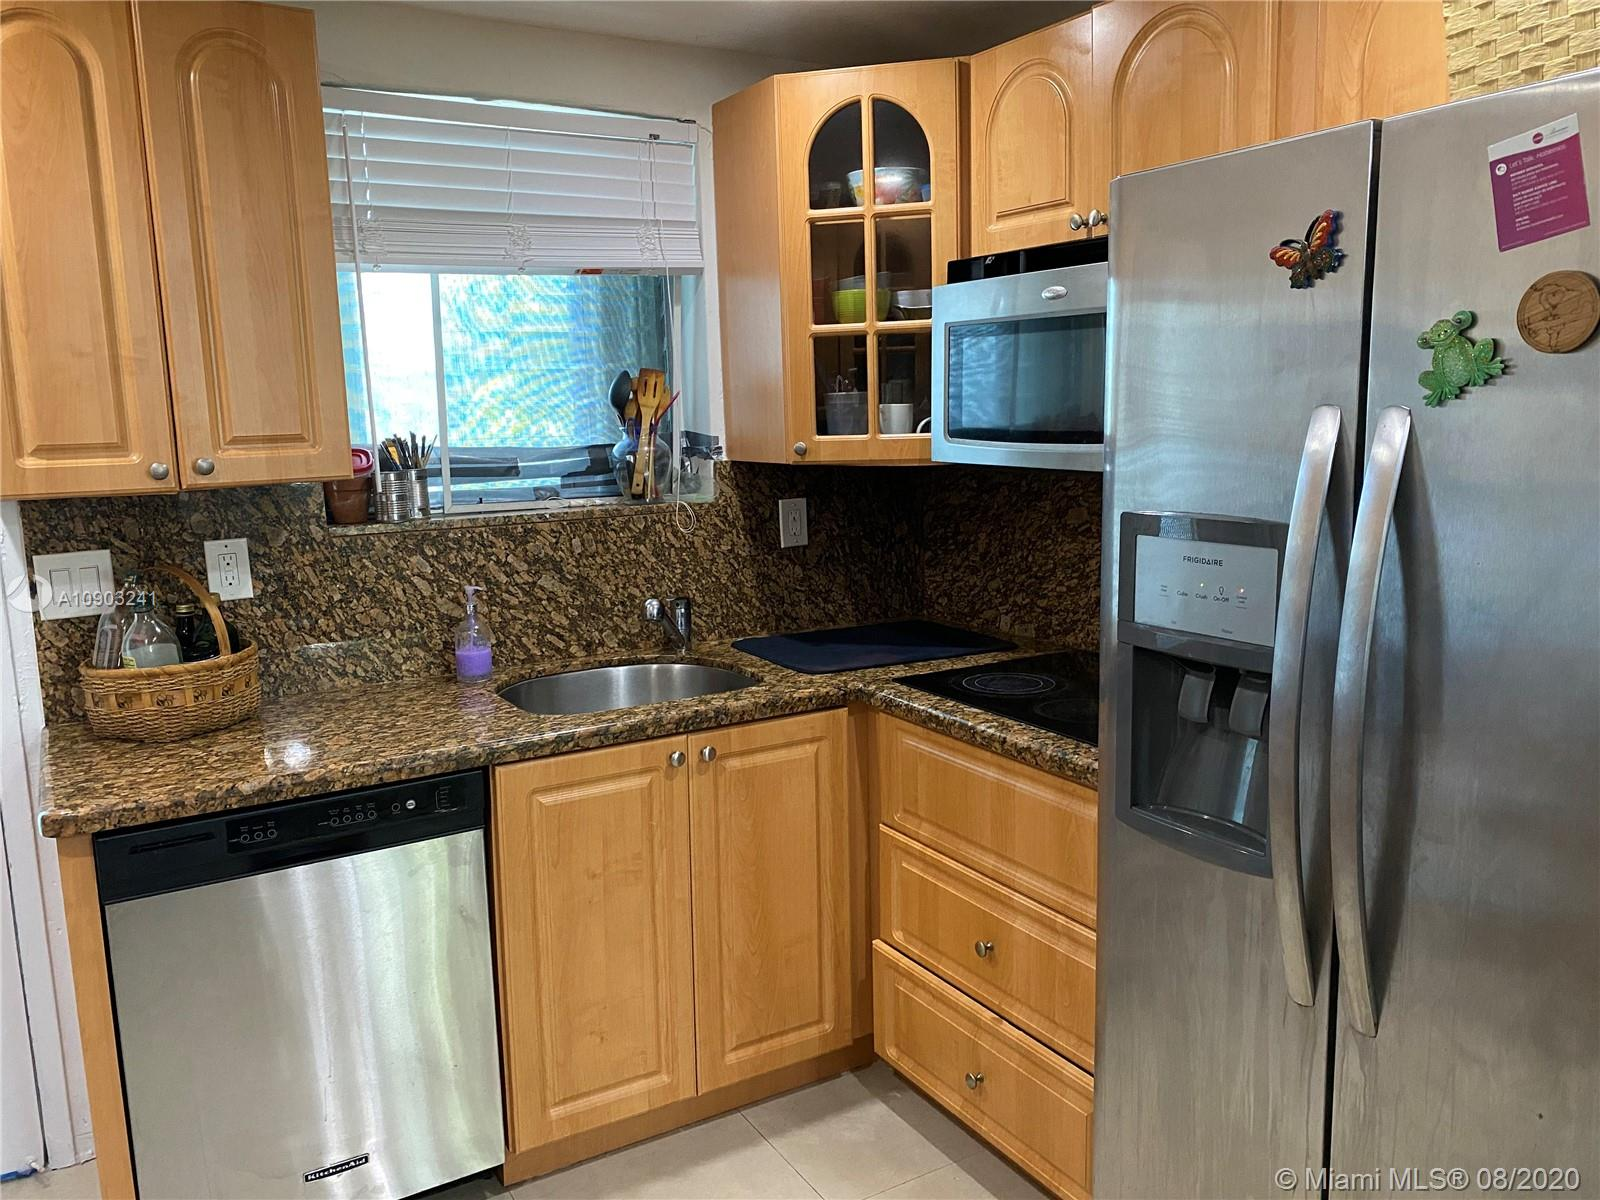 Fully renovated 2 bd/1 bd apartment in desirable Bay Harbor Islands with A grade schools, close to the beach, restaurants, Indian Creek River, shops (including Ball Harbor shops), Ruth K-8 School. Building has a pool and a spacious courtyard.  Laundry room located on premises. Unit is currently rented till 10/04/2020. Priced for a quick sale, motivated seller!